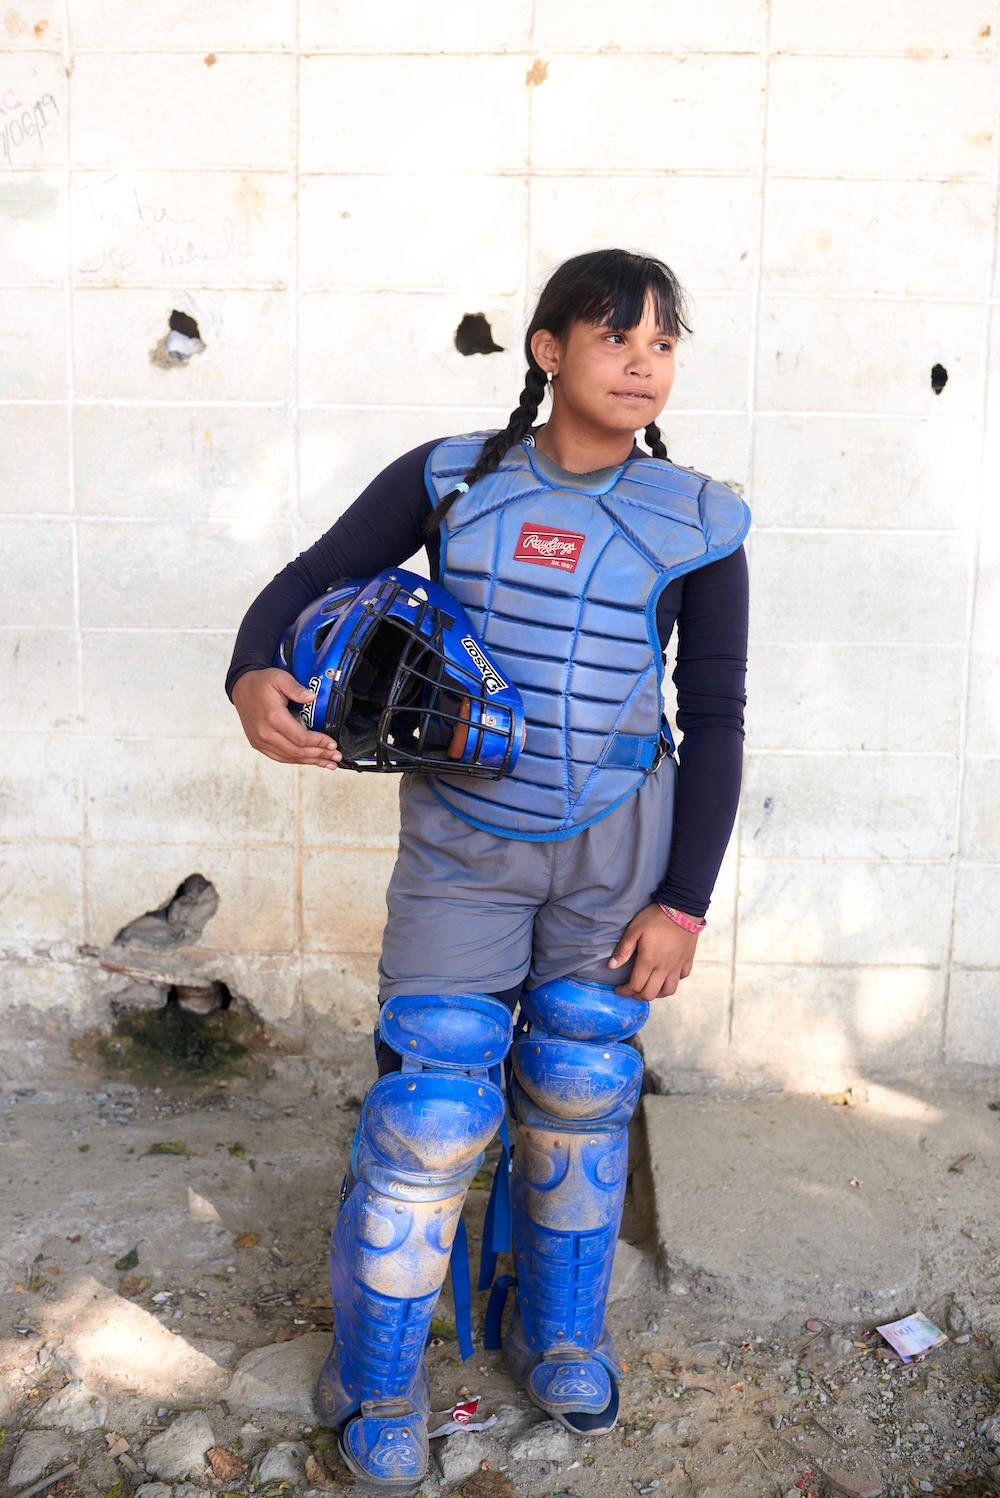 CARACAS, VENEZUELA - FEB 10, 2020 Maria, a 14 year old baseball player, poses for a portrait at her academy. The local academy works to train young talent as parents hope that their child will be picked up by a US team, providing financial security as the crisis continues. Credit: Lexi Parra